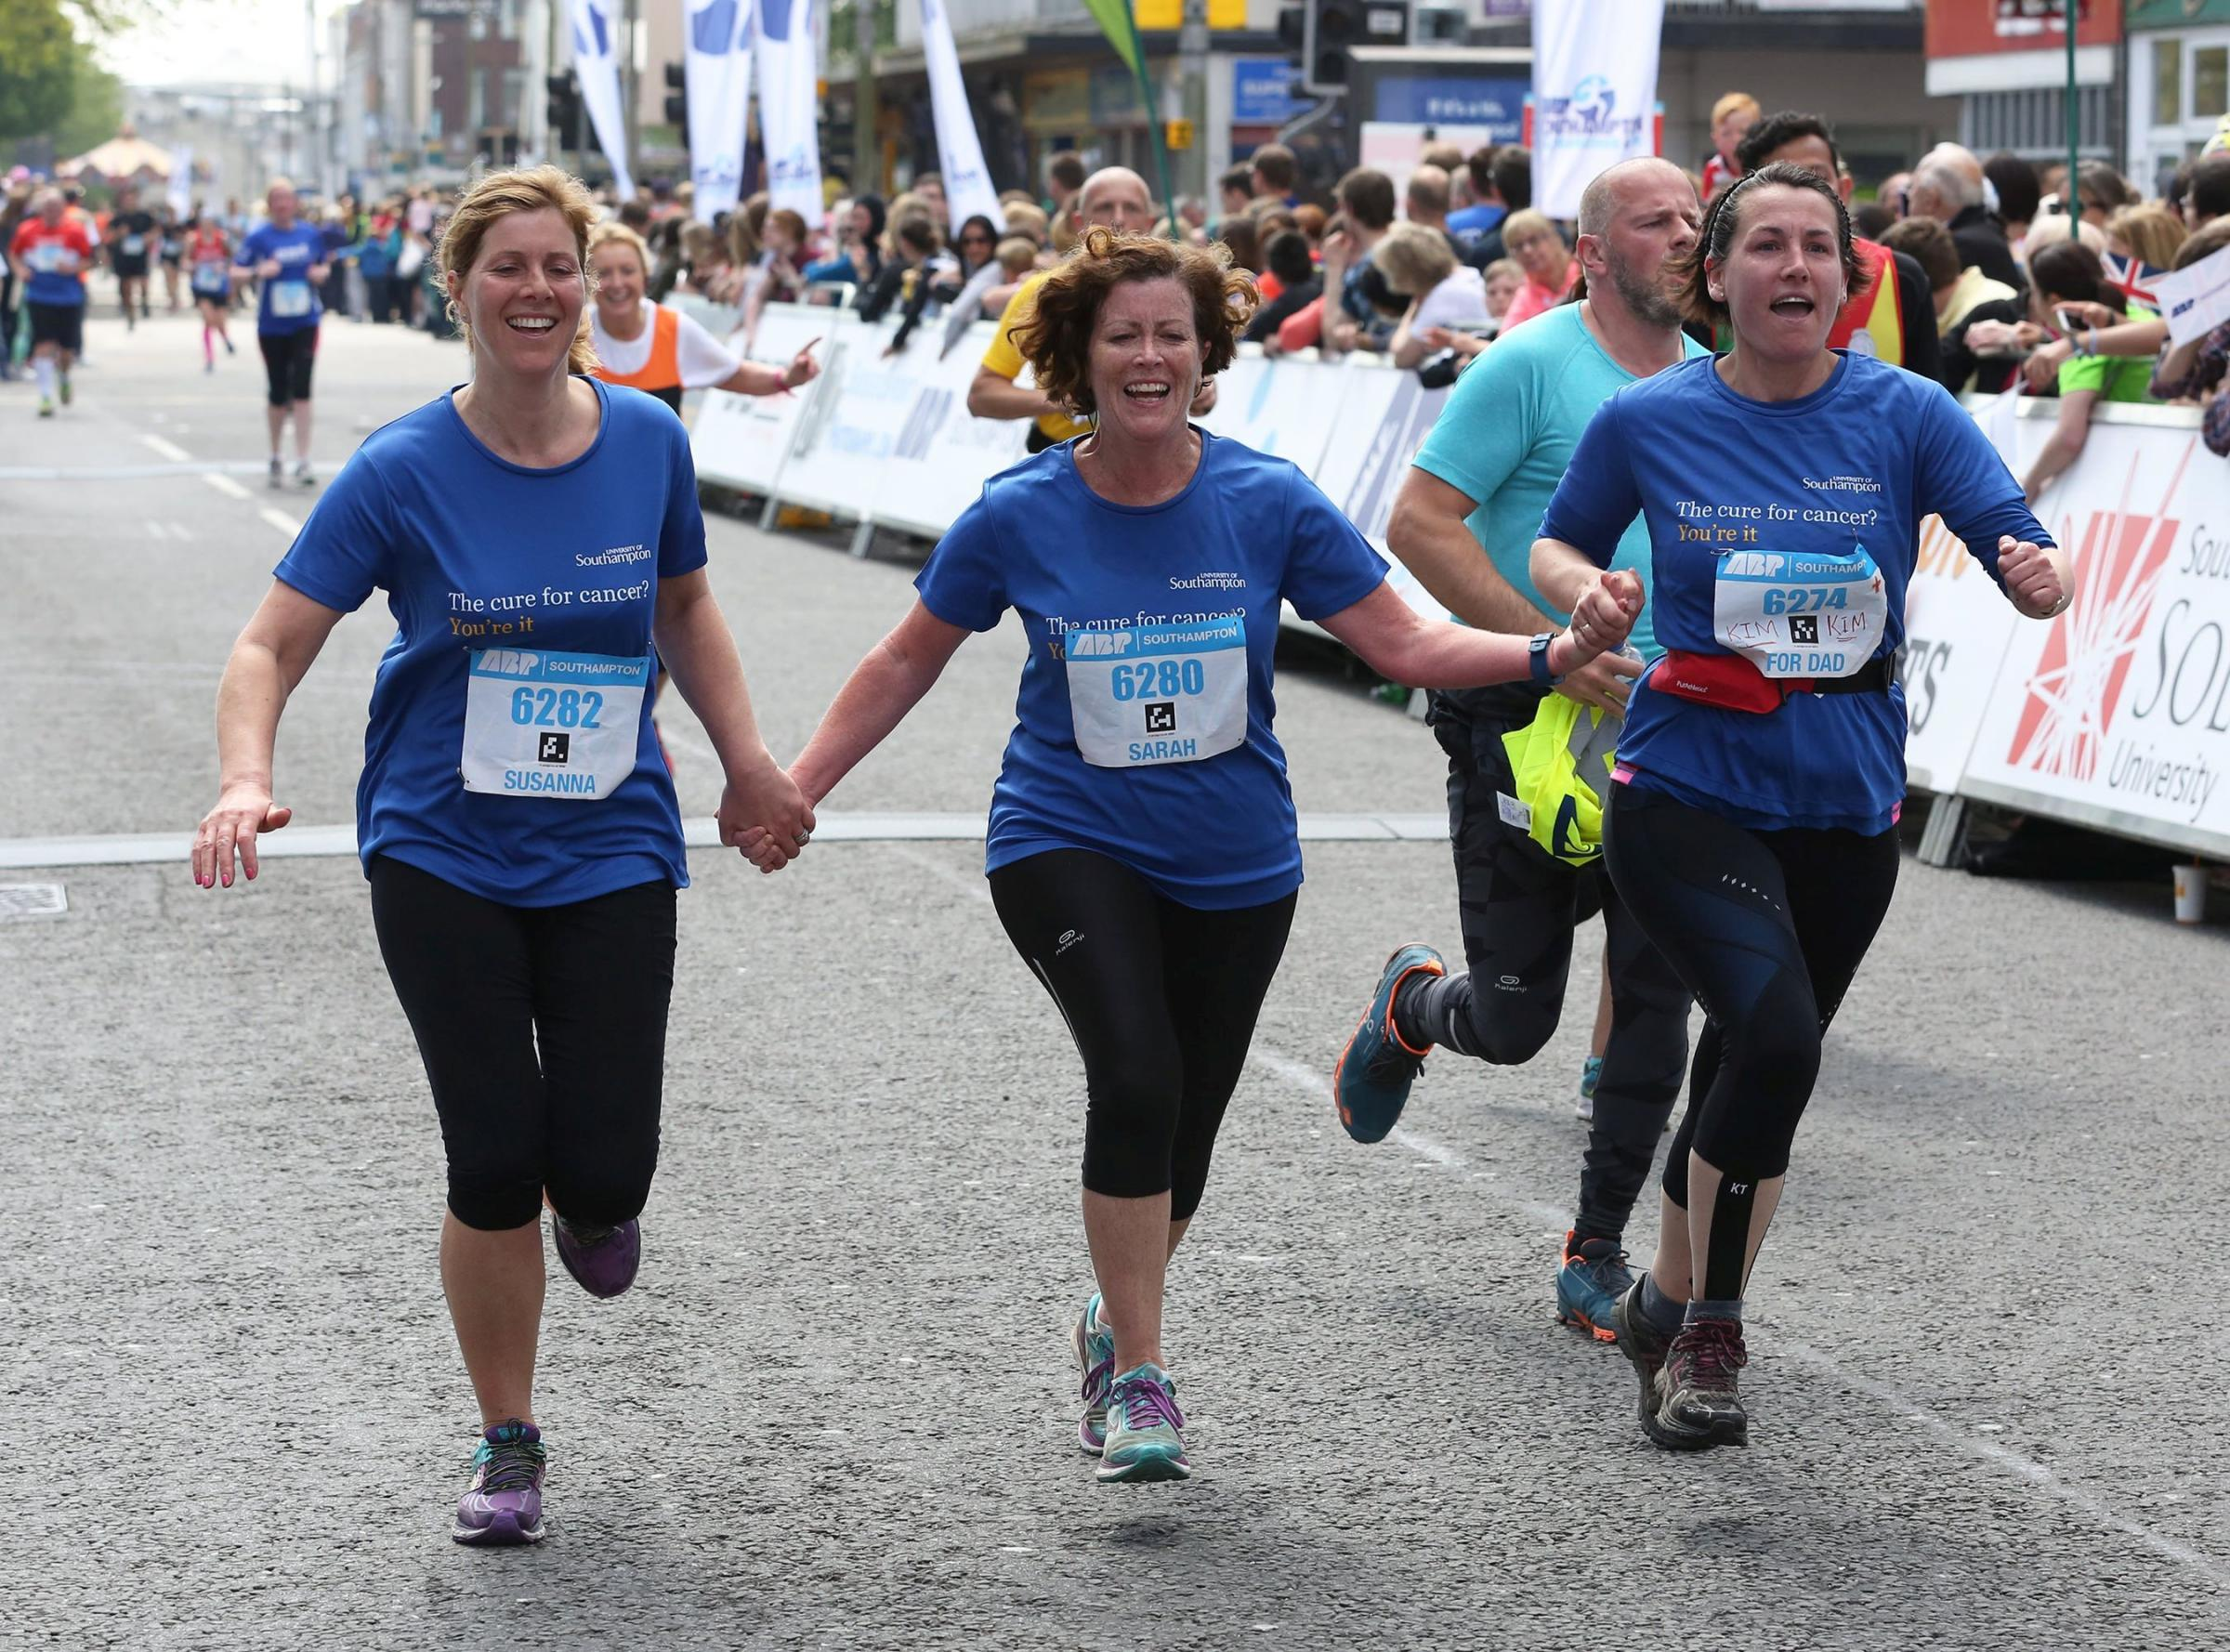 Runners taking part in last year's ABP Southampton Marathon event